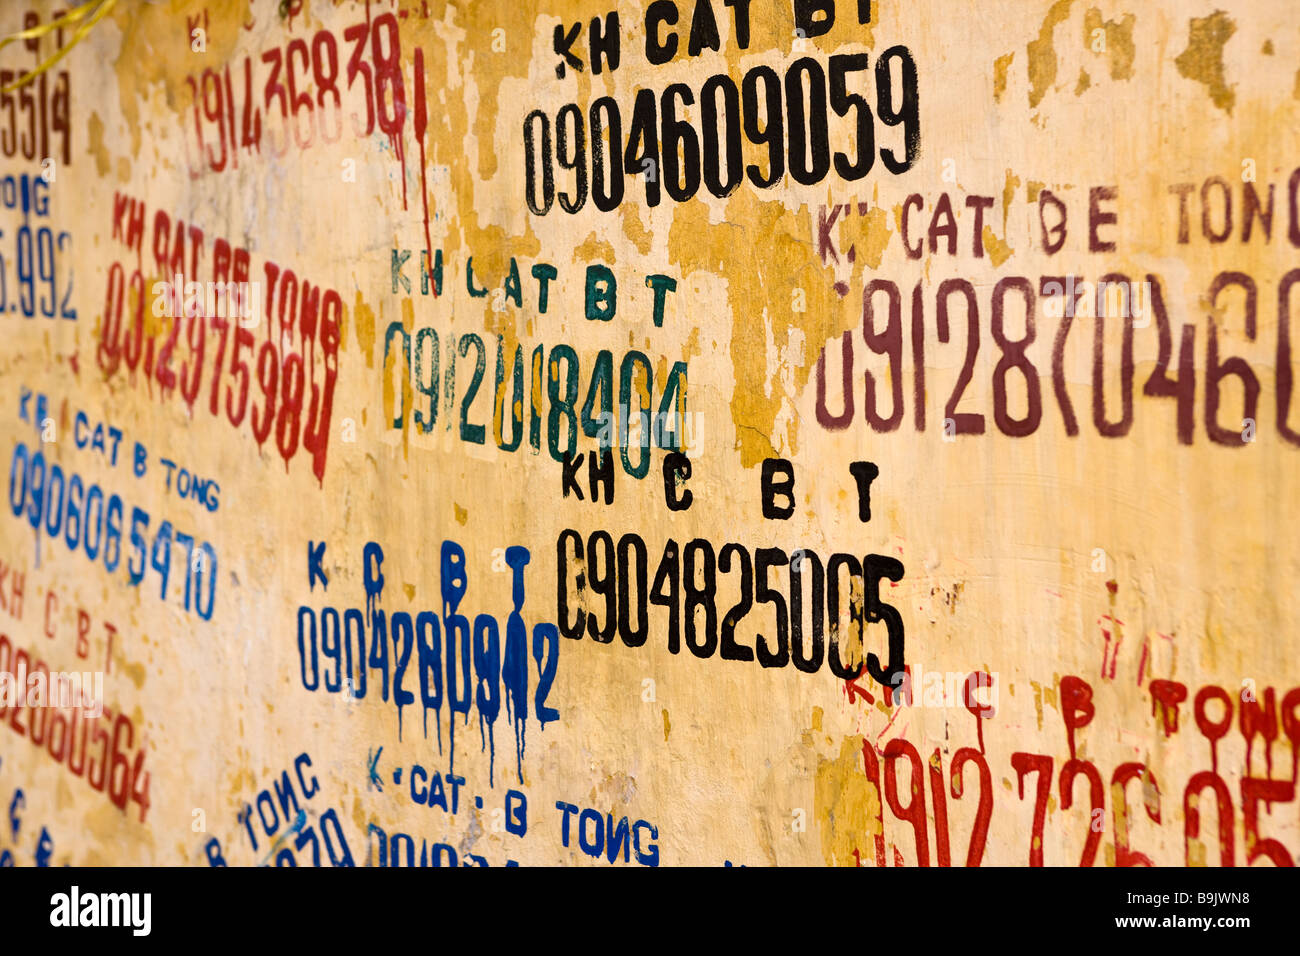 Wall Phone Advertising Business Numbers Stock Photos & Wall Phone ...